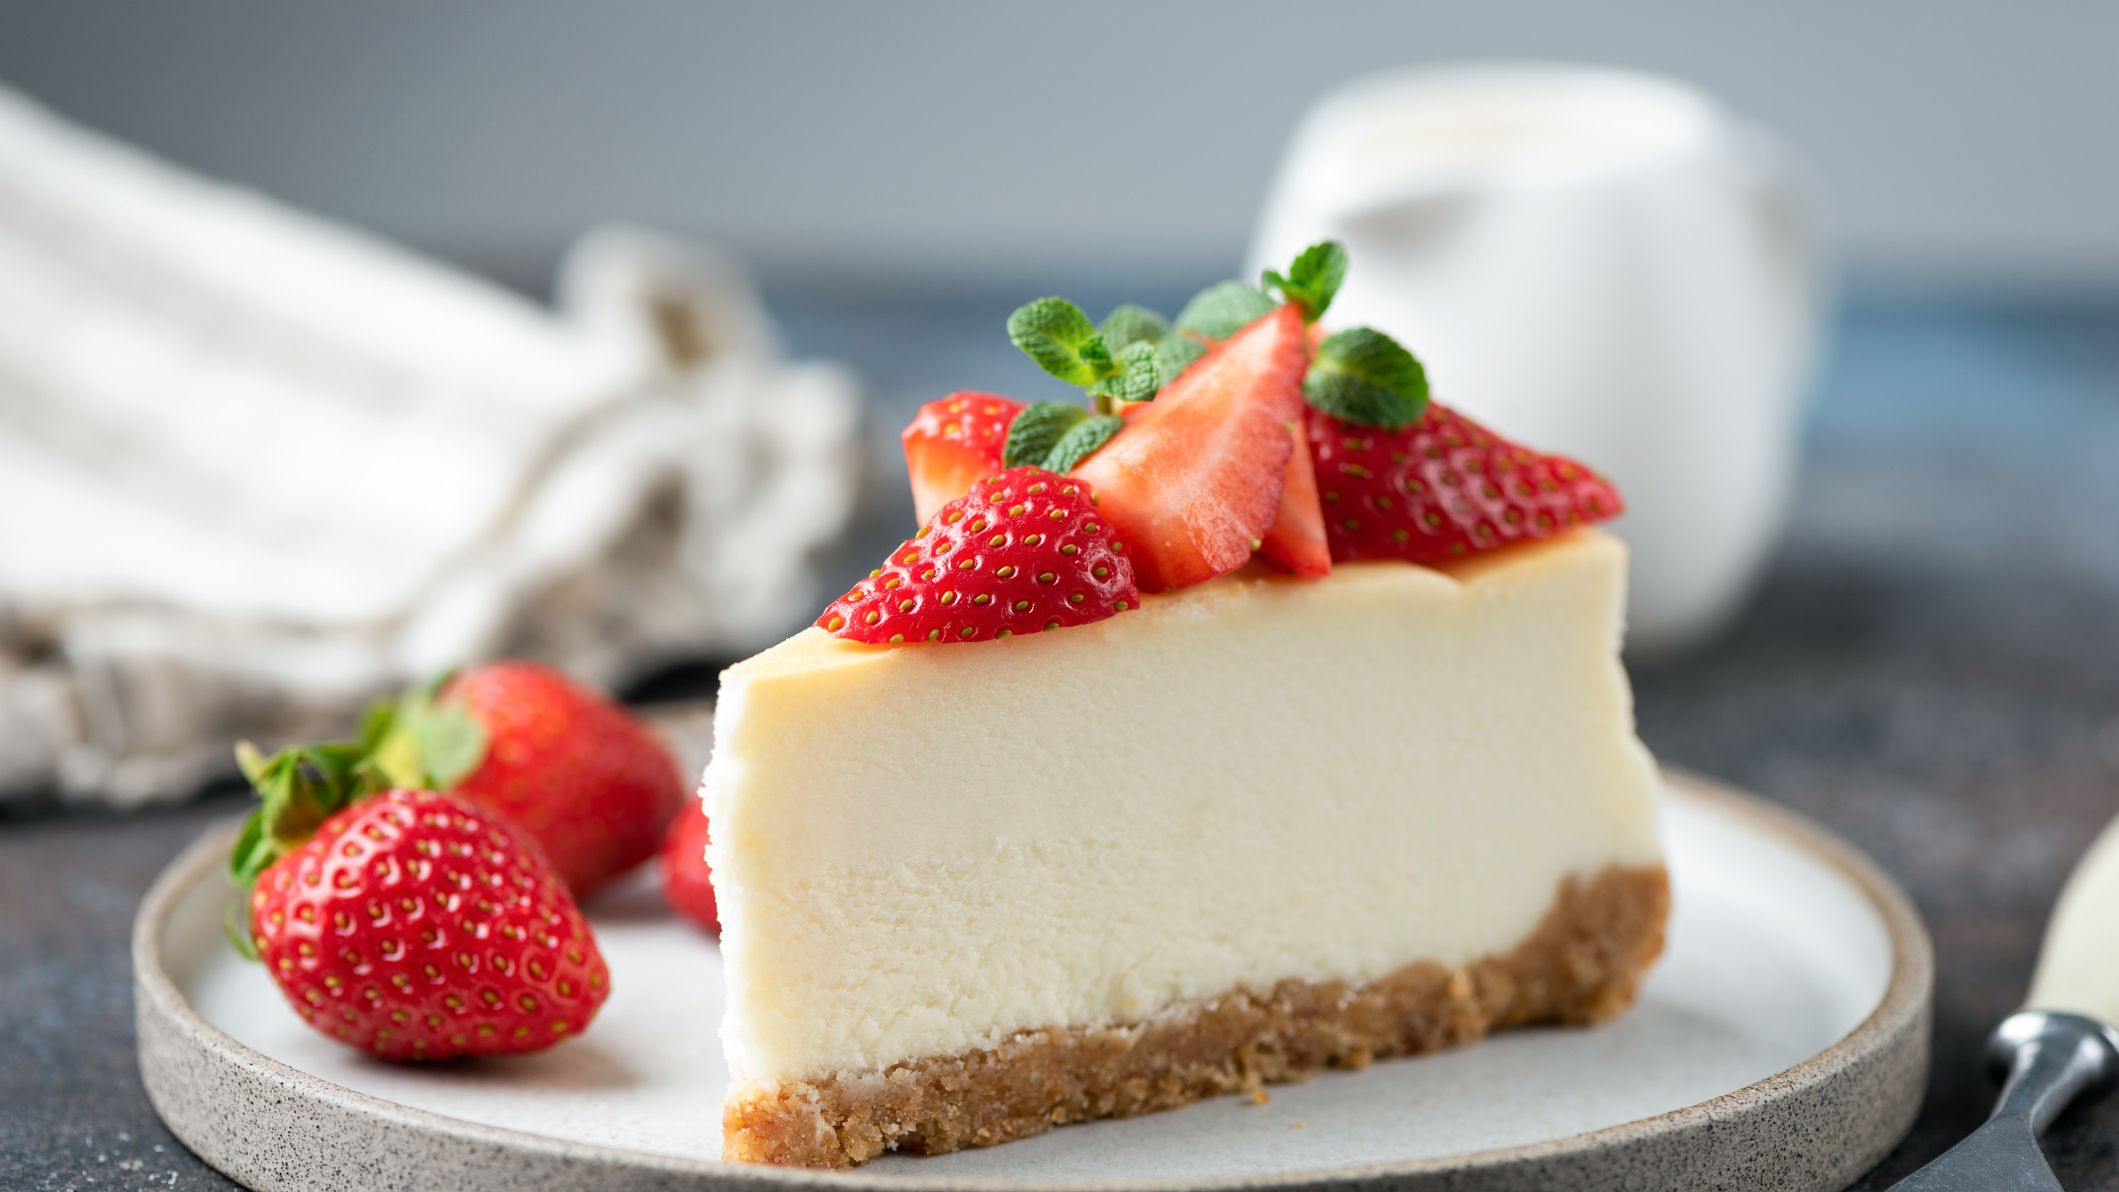 The 6 Best Cheesecake Delivery Services Of 2021